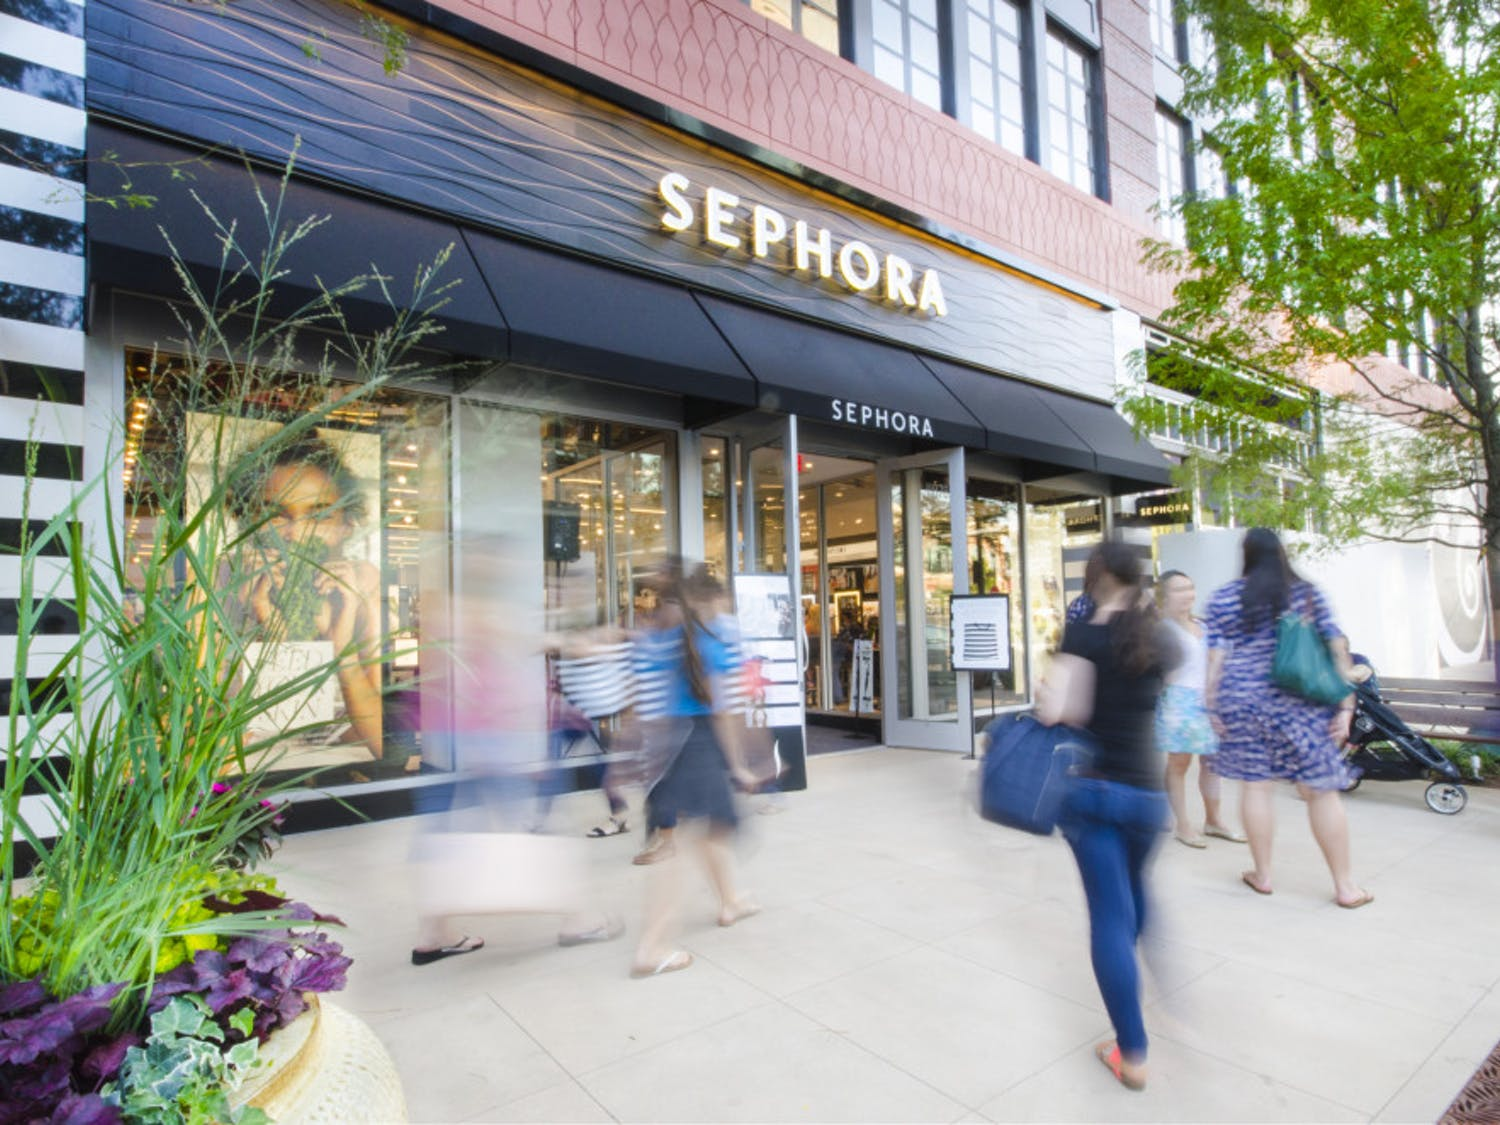 Sephora operates over 25,000 stores in 32 countries worldwide, according to the Sephora website.